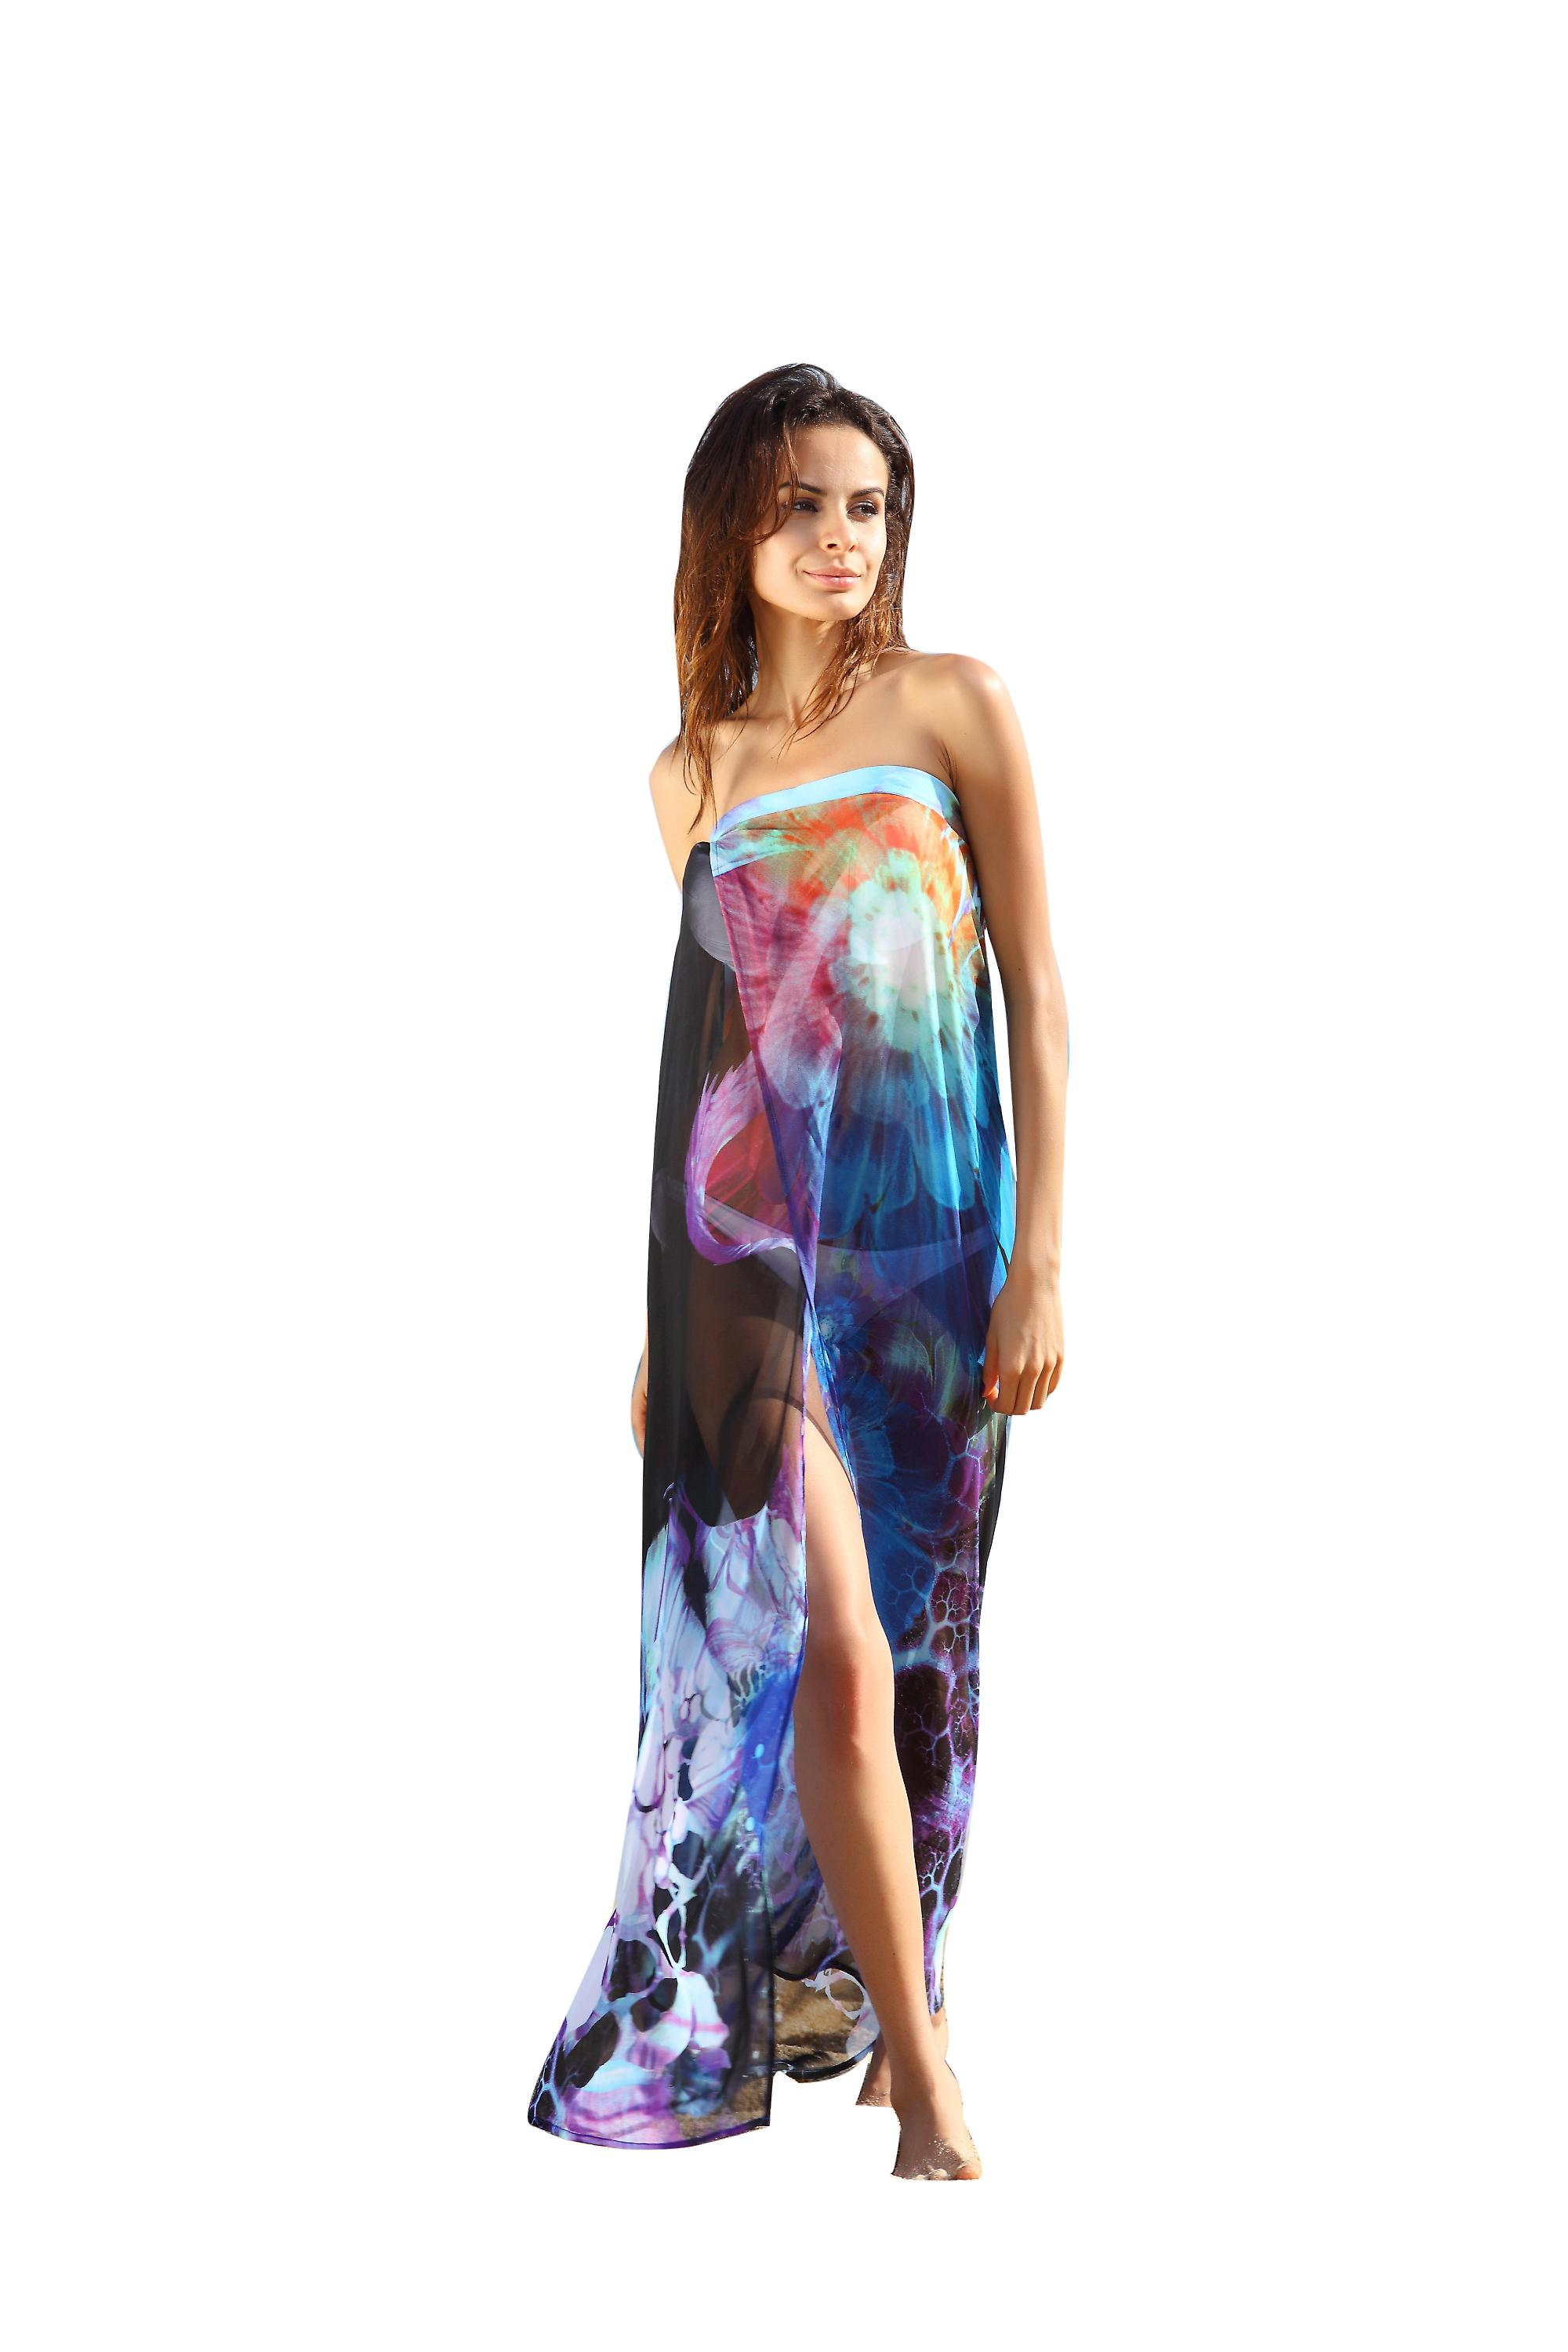 Waooh - Fashion - Sarong / Dress